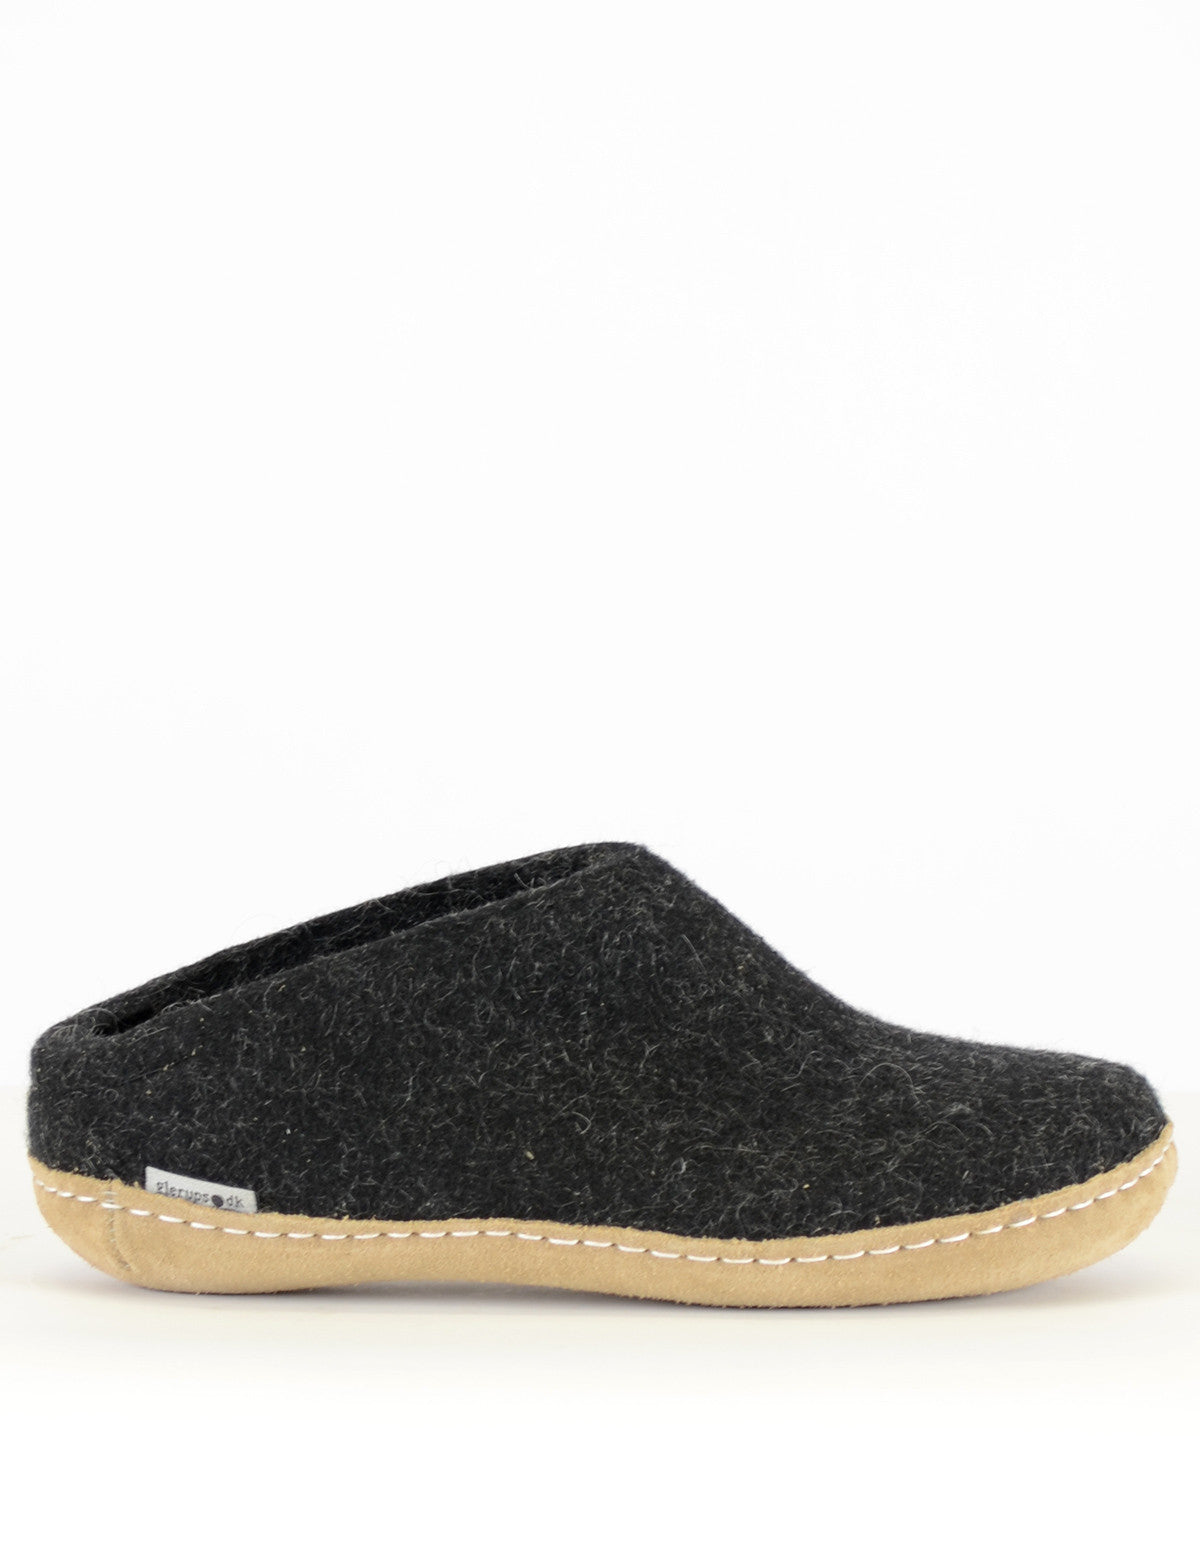 Glerups Women's Wool Slipper Leather Sole Charcoal - Still Life - 1